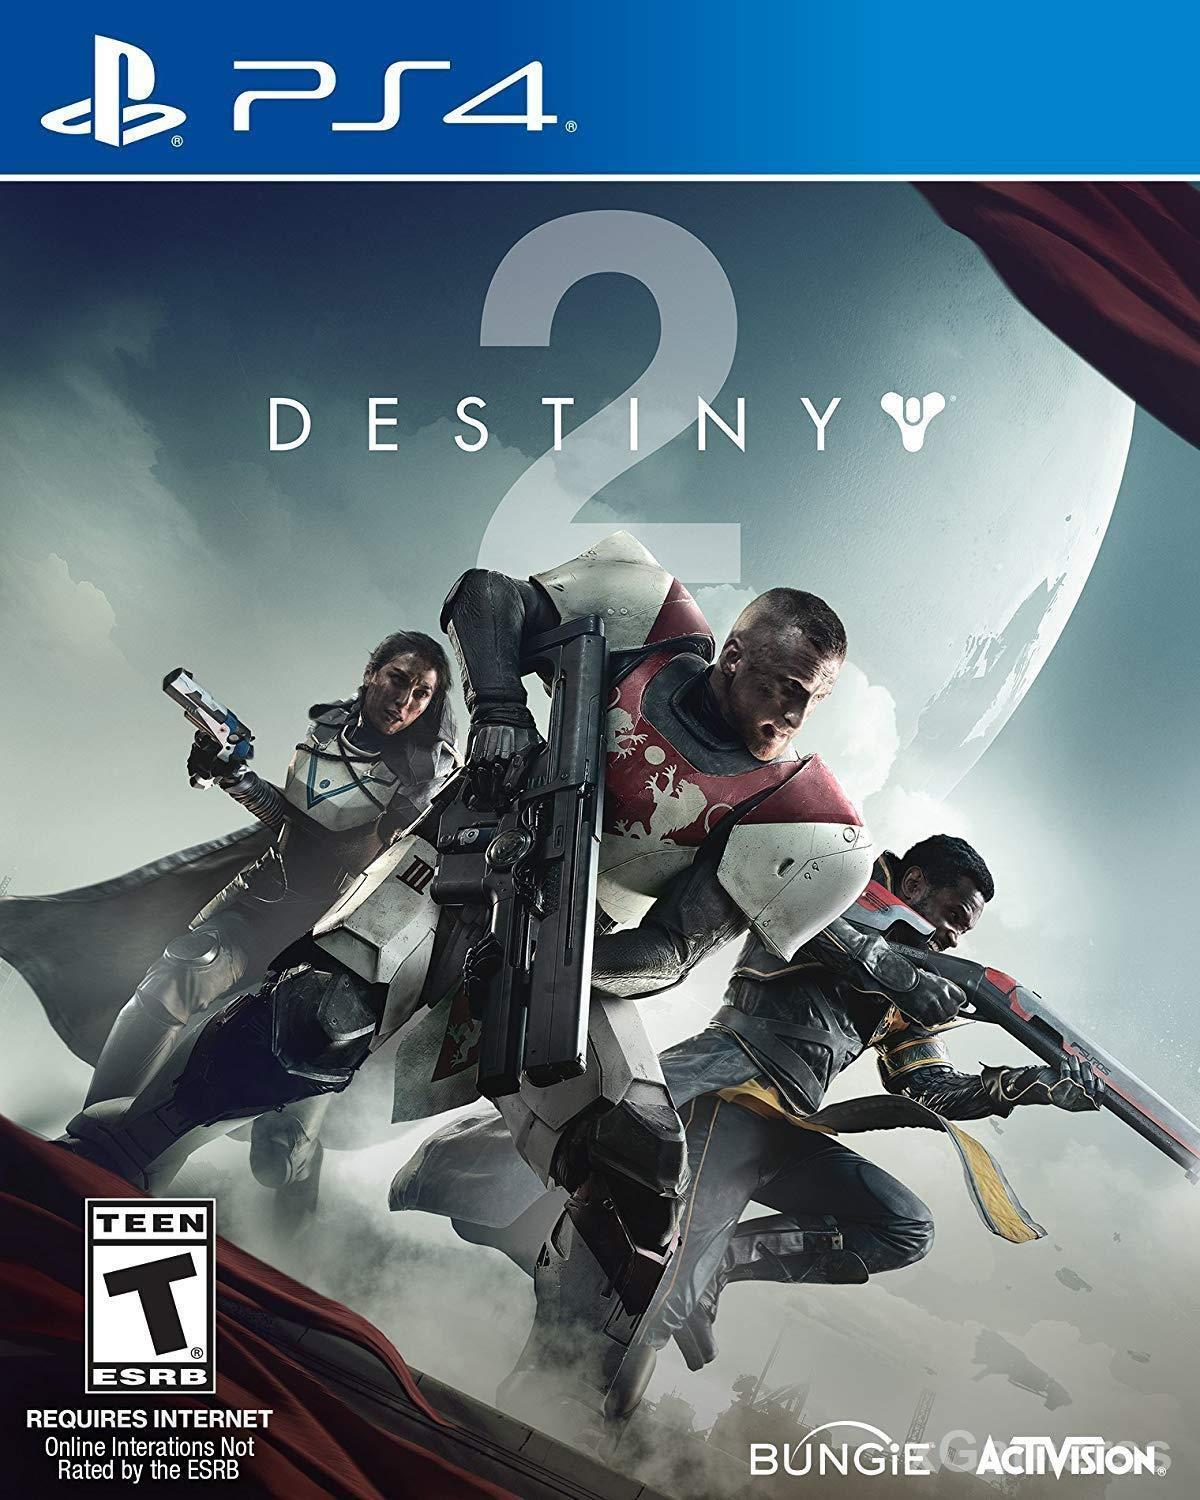 Destiny 2 - It is a multiplayer open-world game